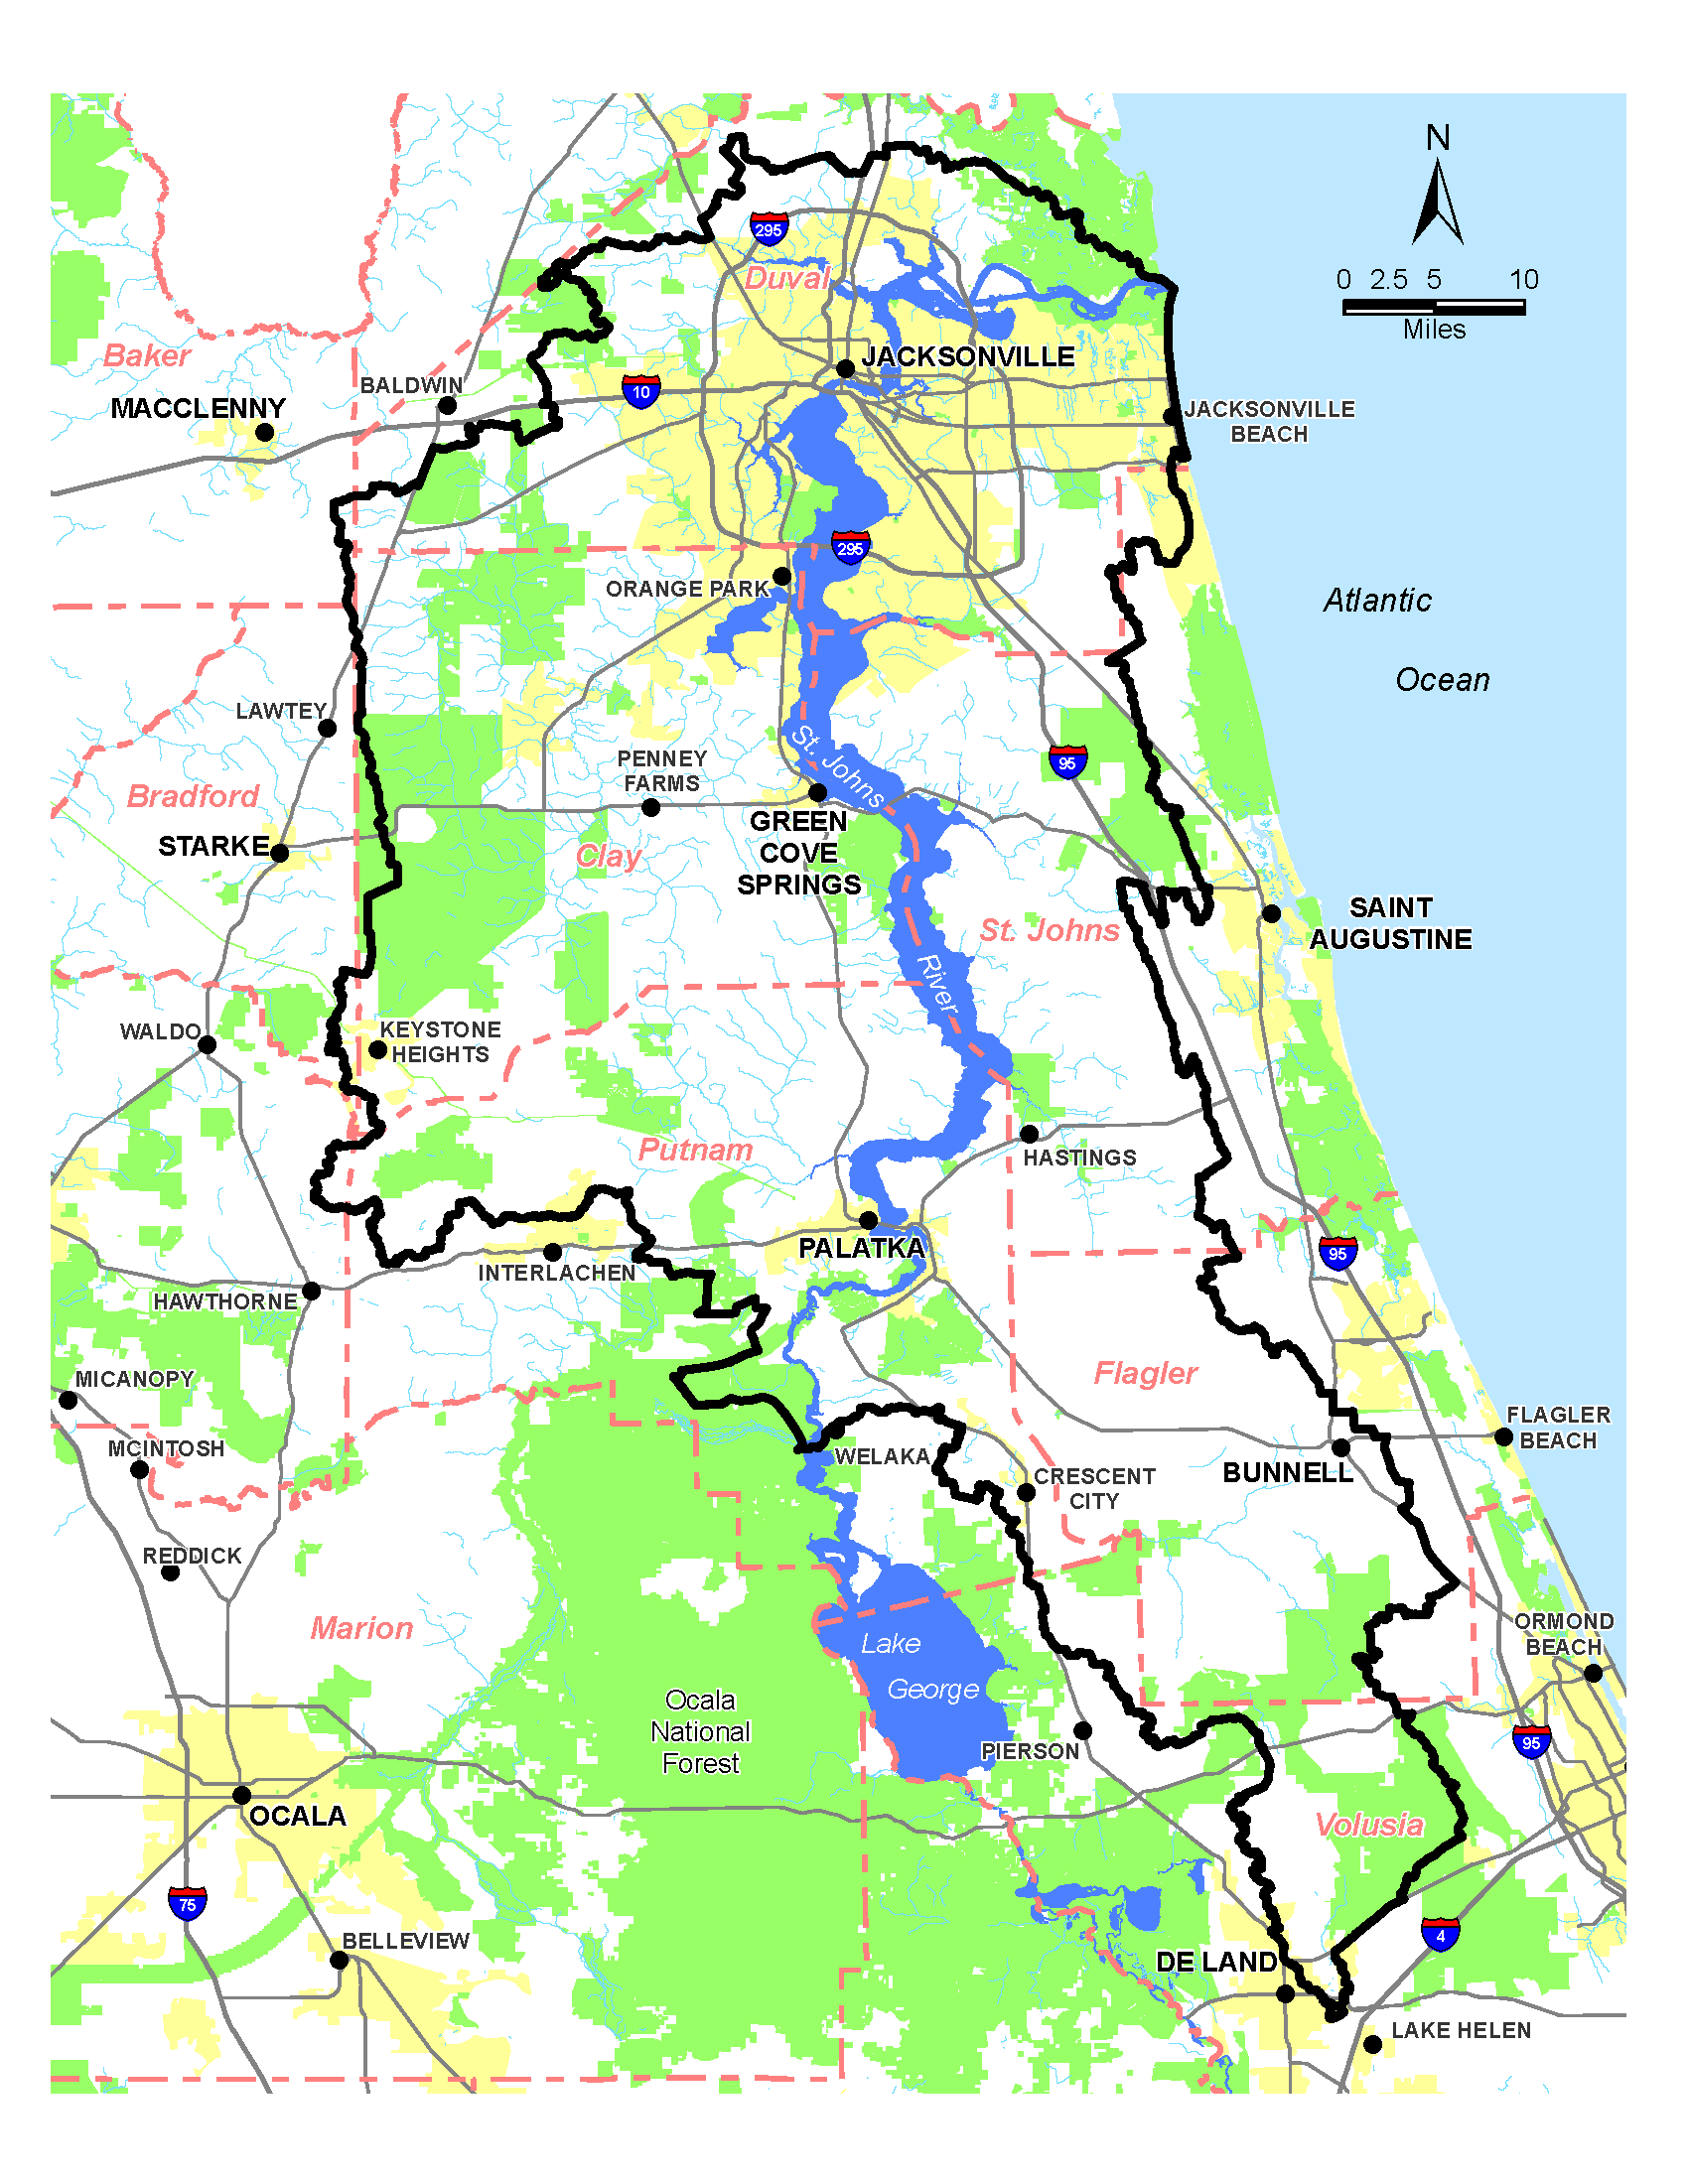 Figure 1.1 Geopolitical Map of the Lower St. Johns River Basin, Florida (outlined in black).